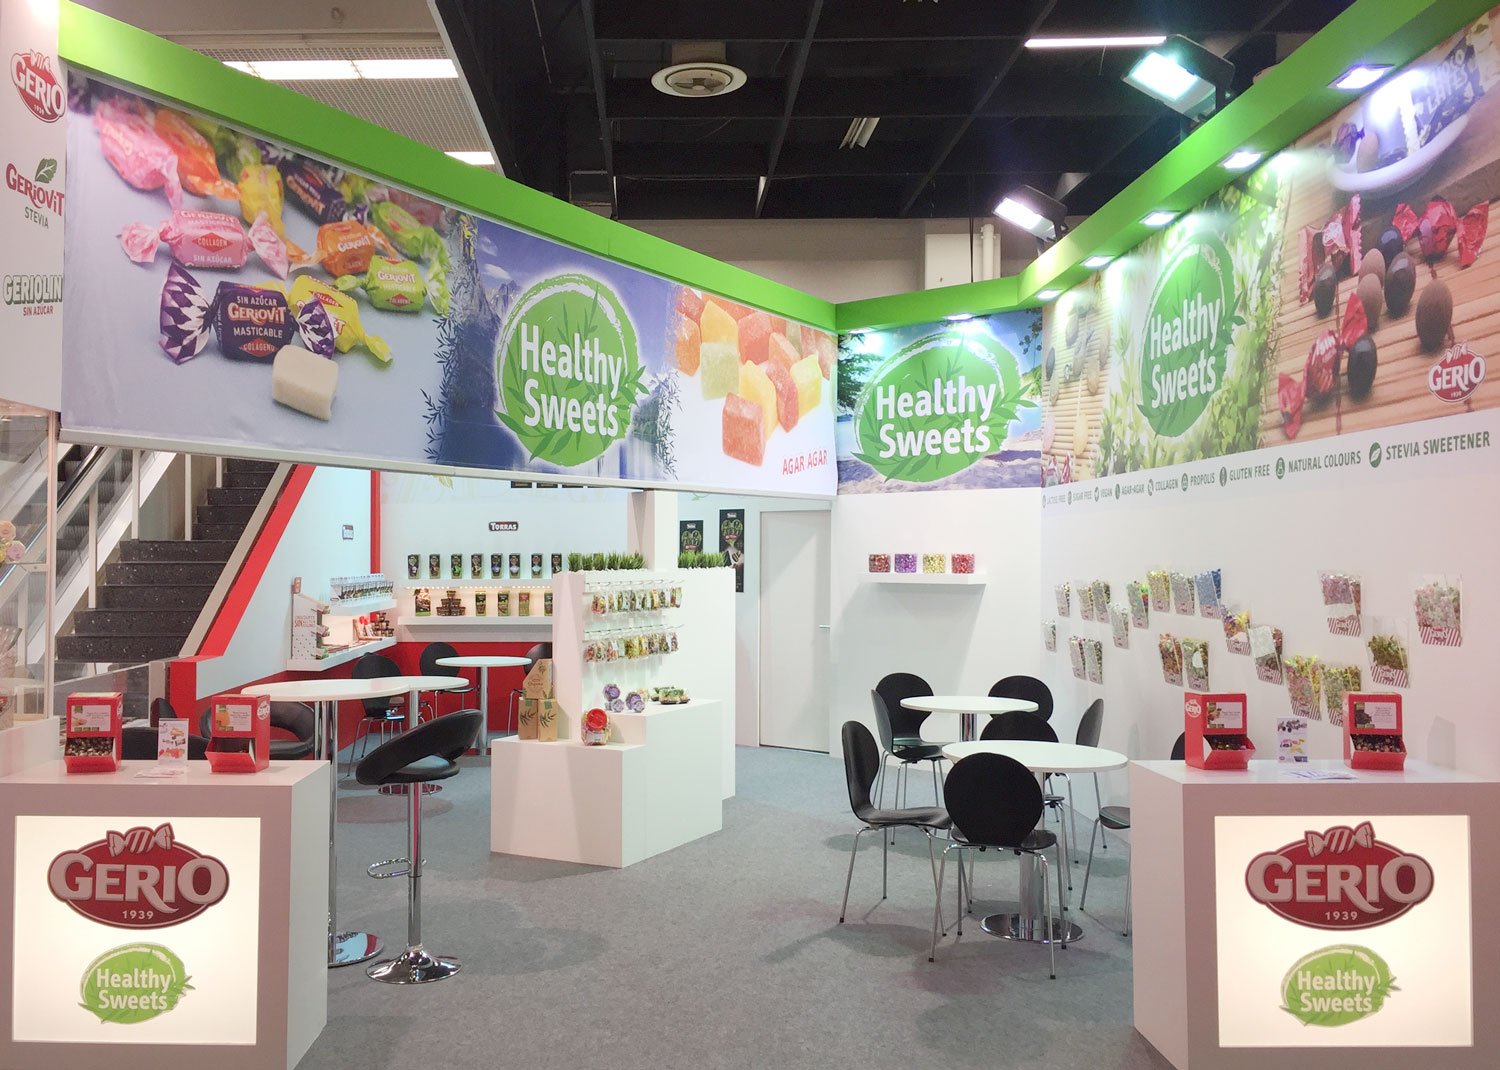 Gulfood 2018 Dubai Sugar-free and gluten-free candies, chews and healthy sweets.